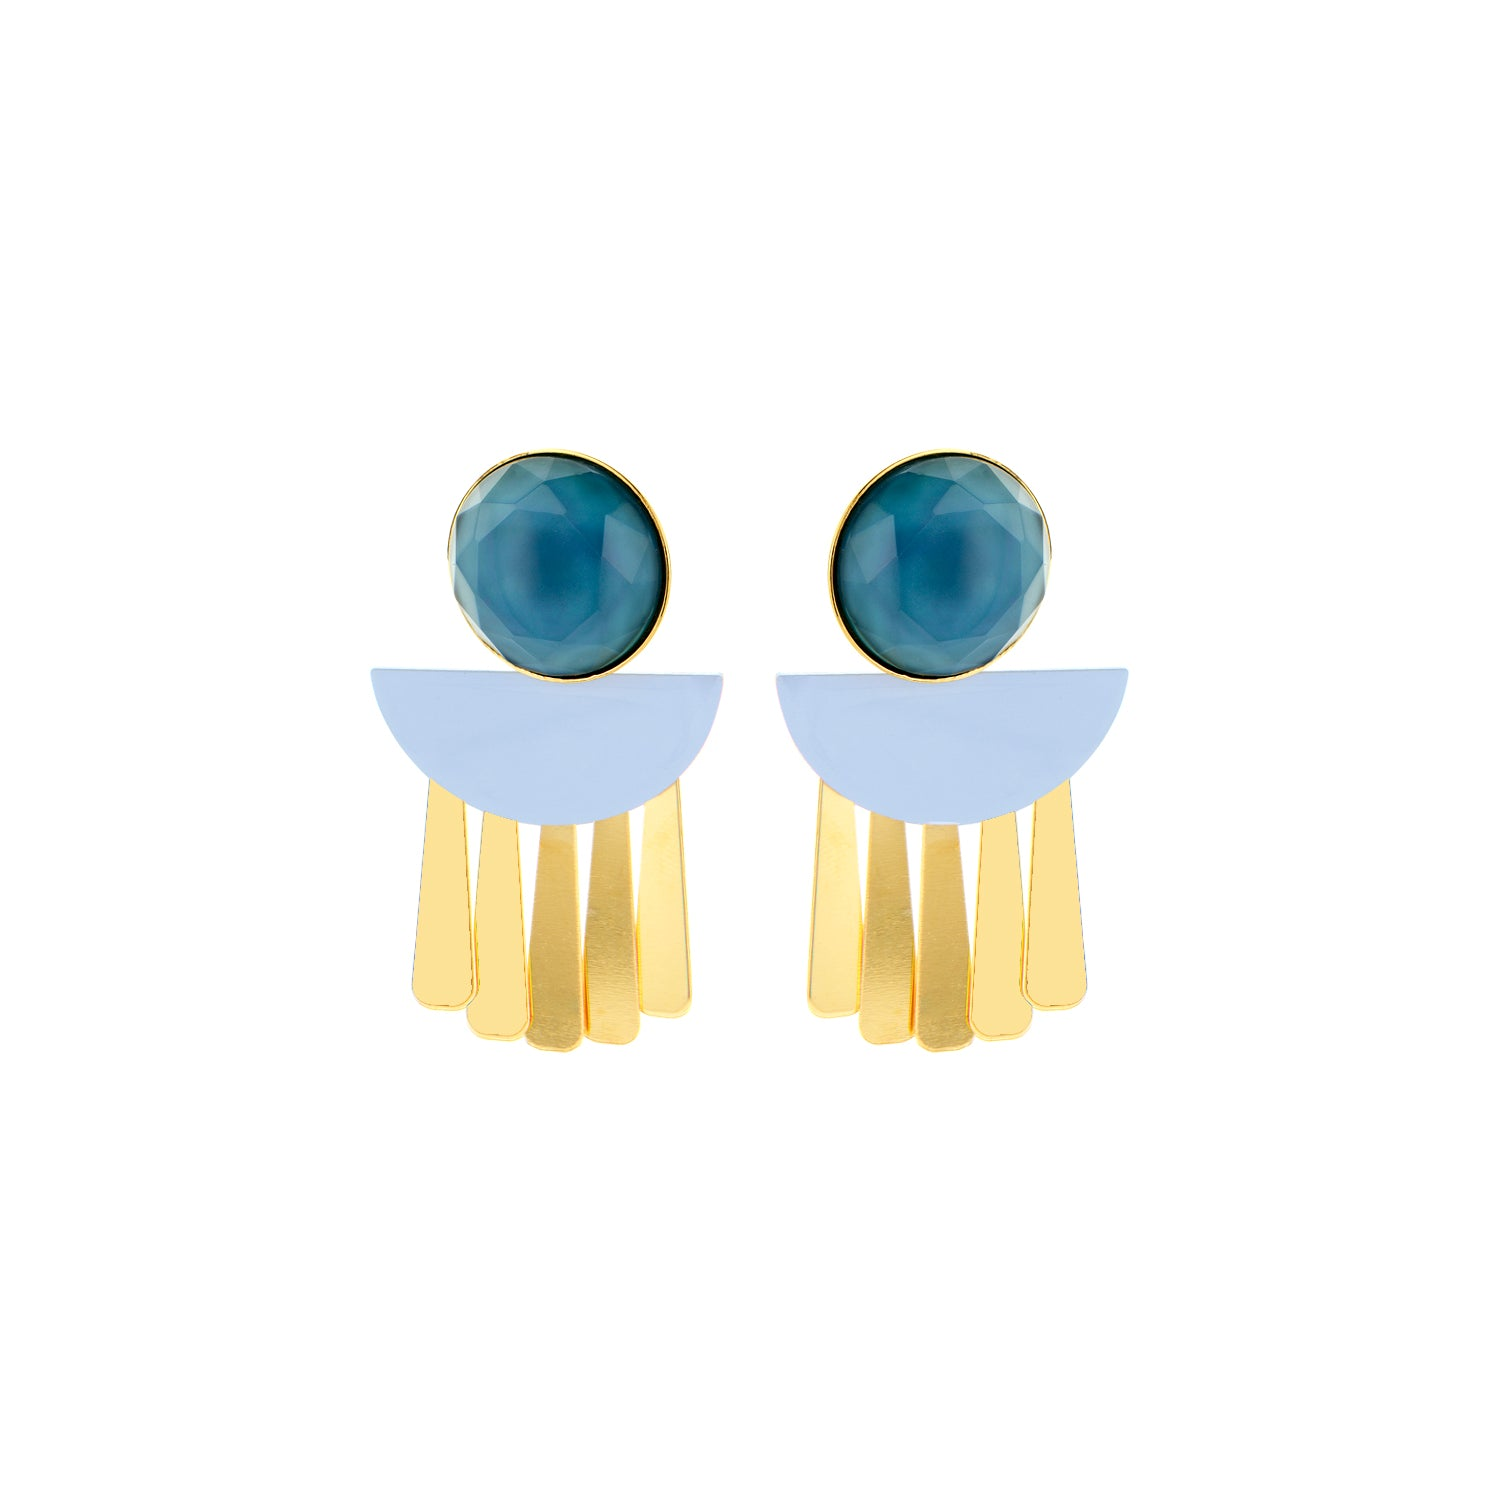 Moonlight jeans earrings - Souvenirs de Pomme